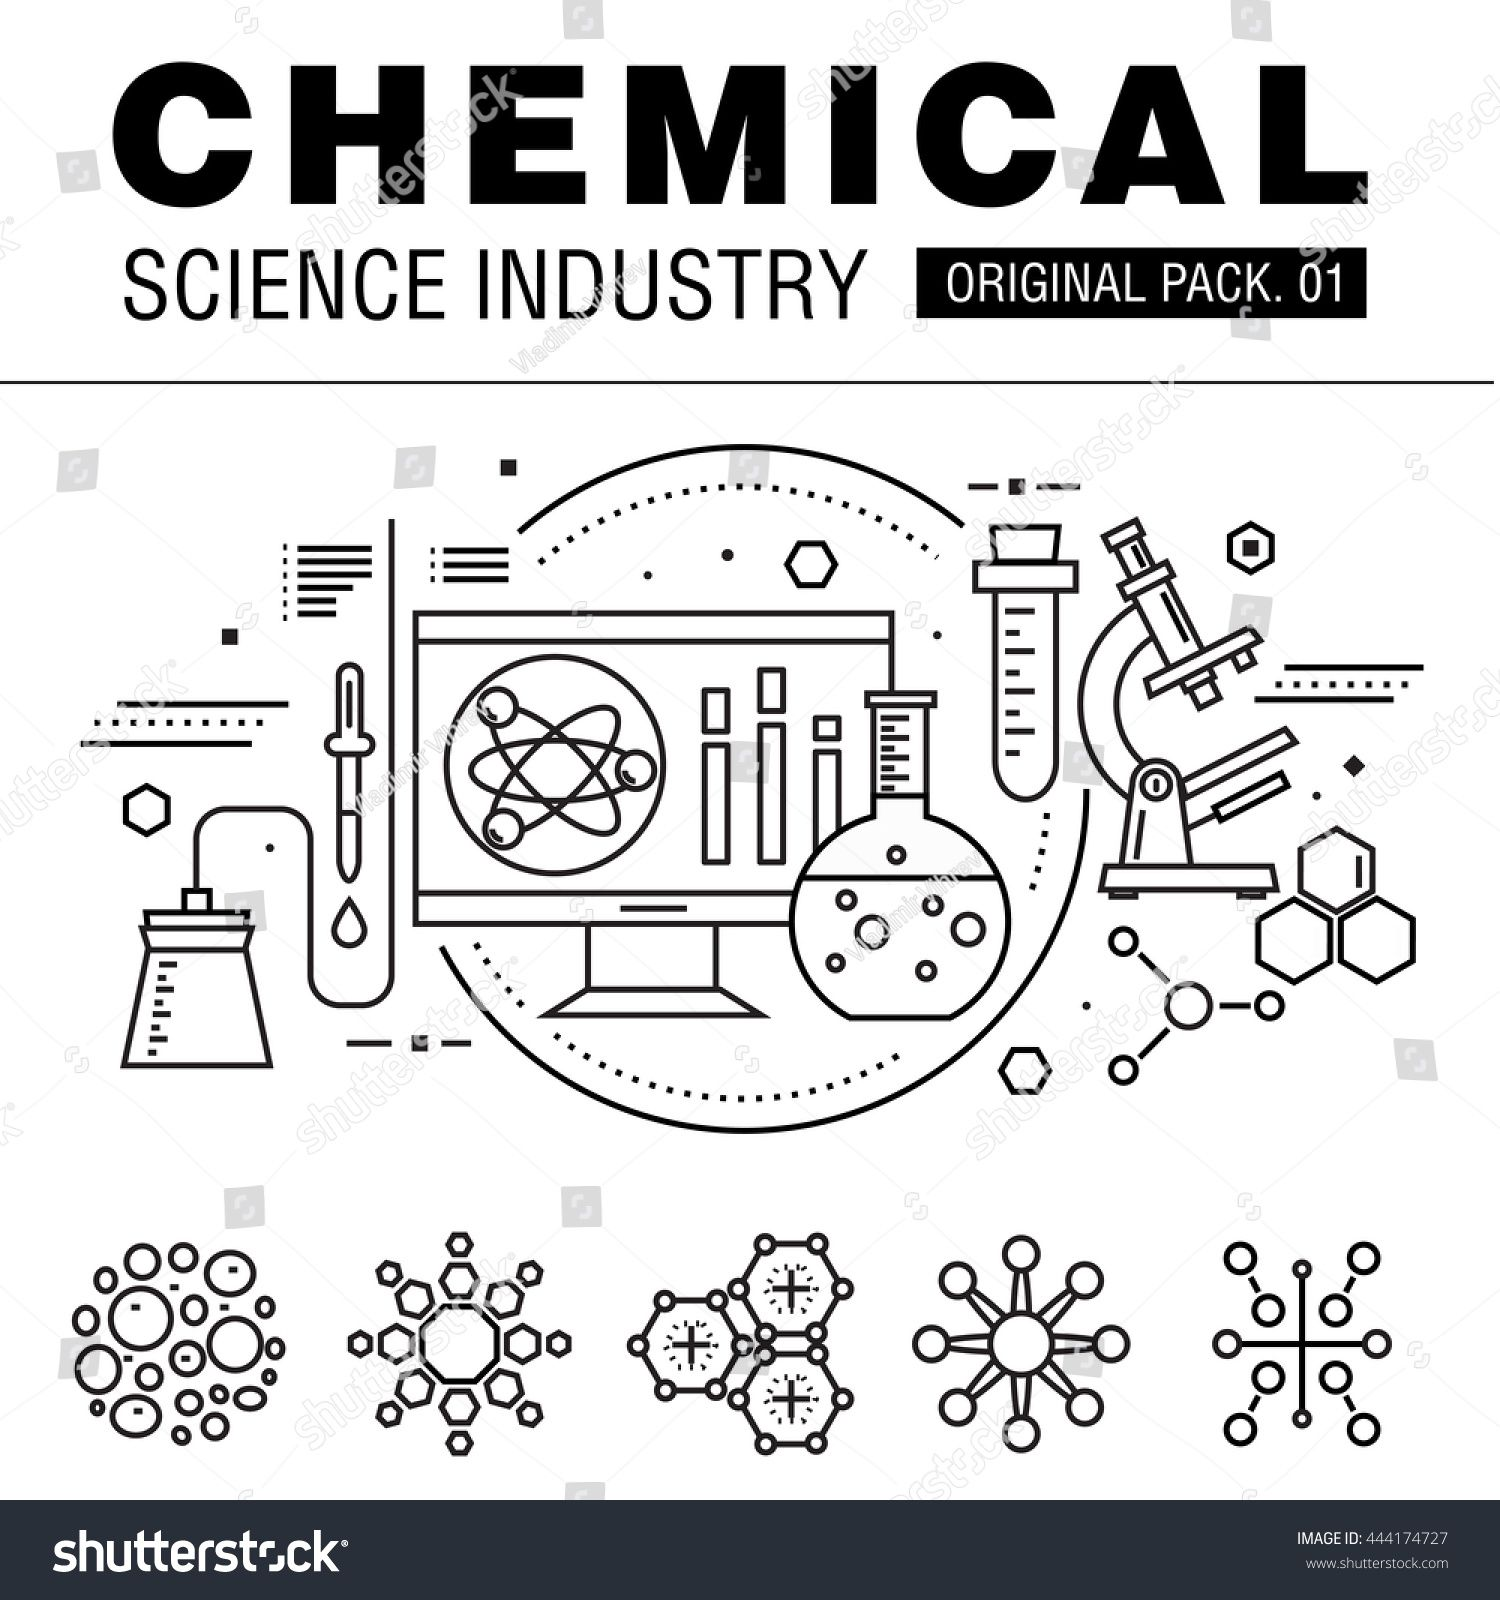 Modern chemical science industry. Thin line icons set